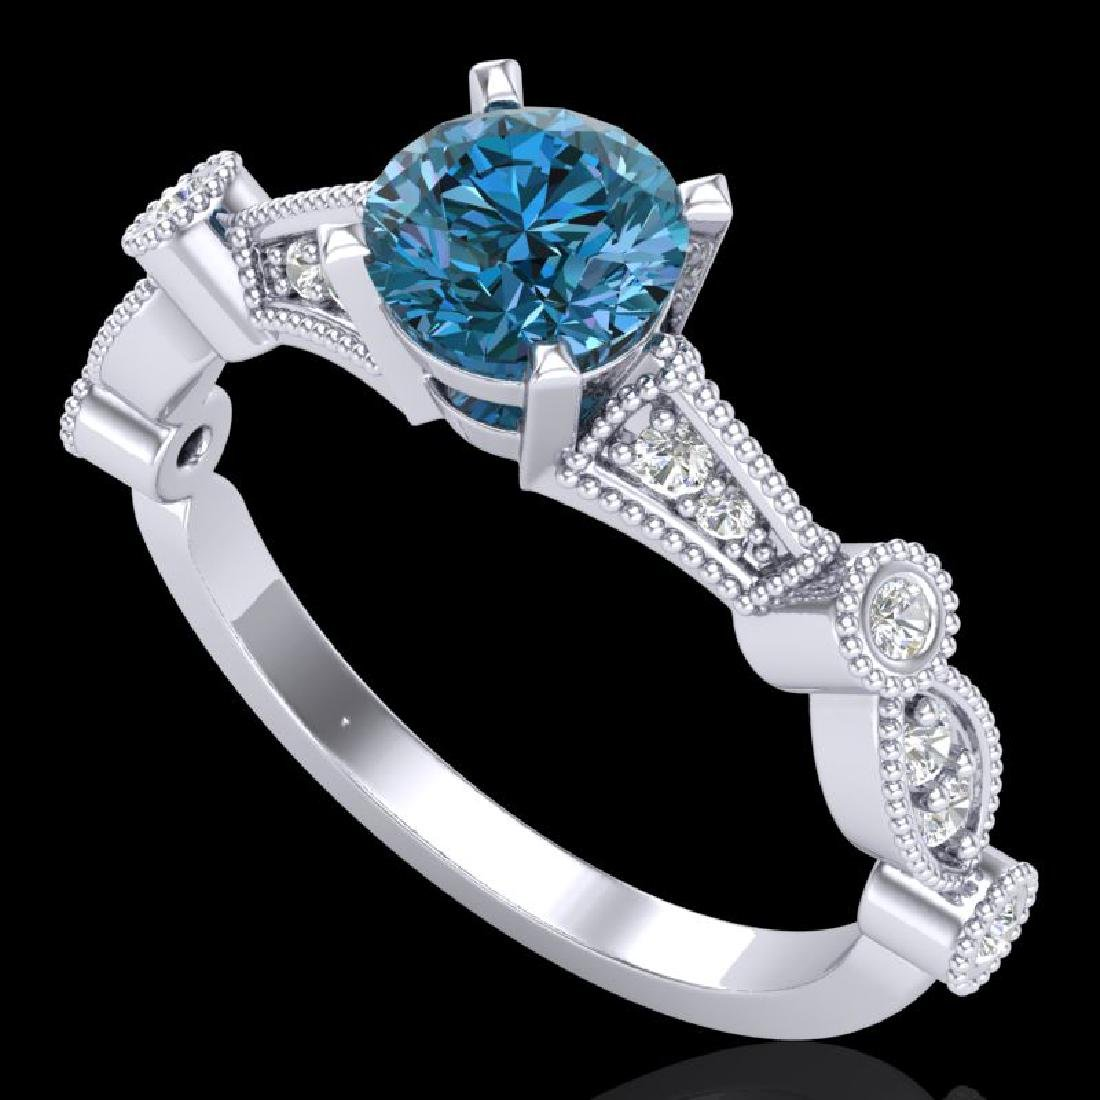 1.03 CTW Fancy Intense Blue Diamond Solitaire Art Deco